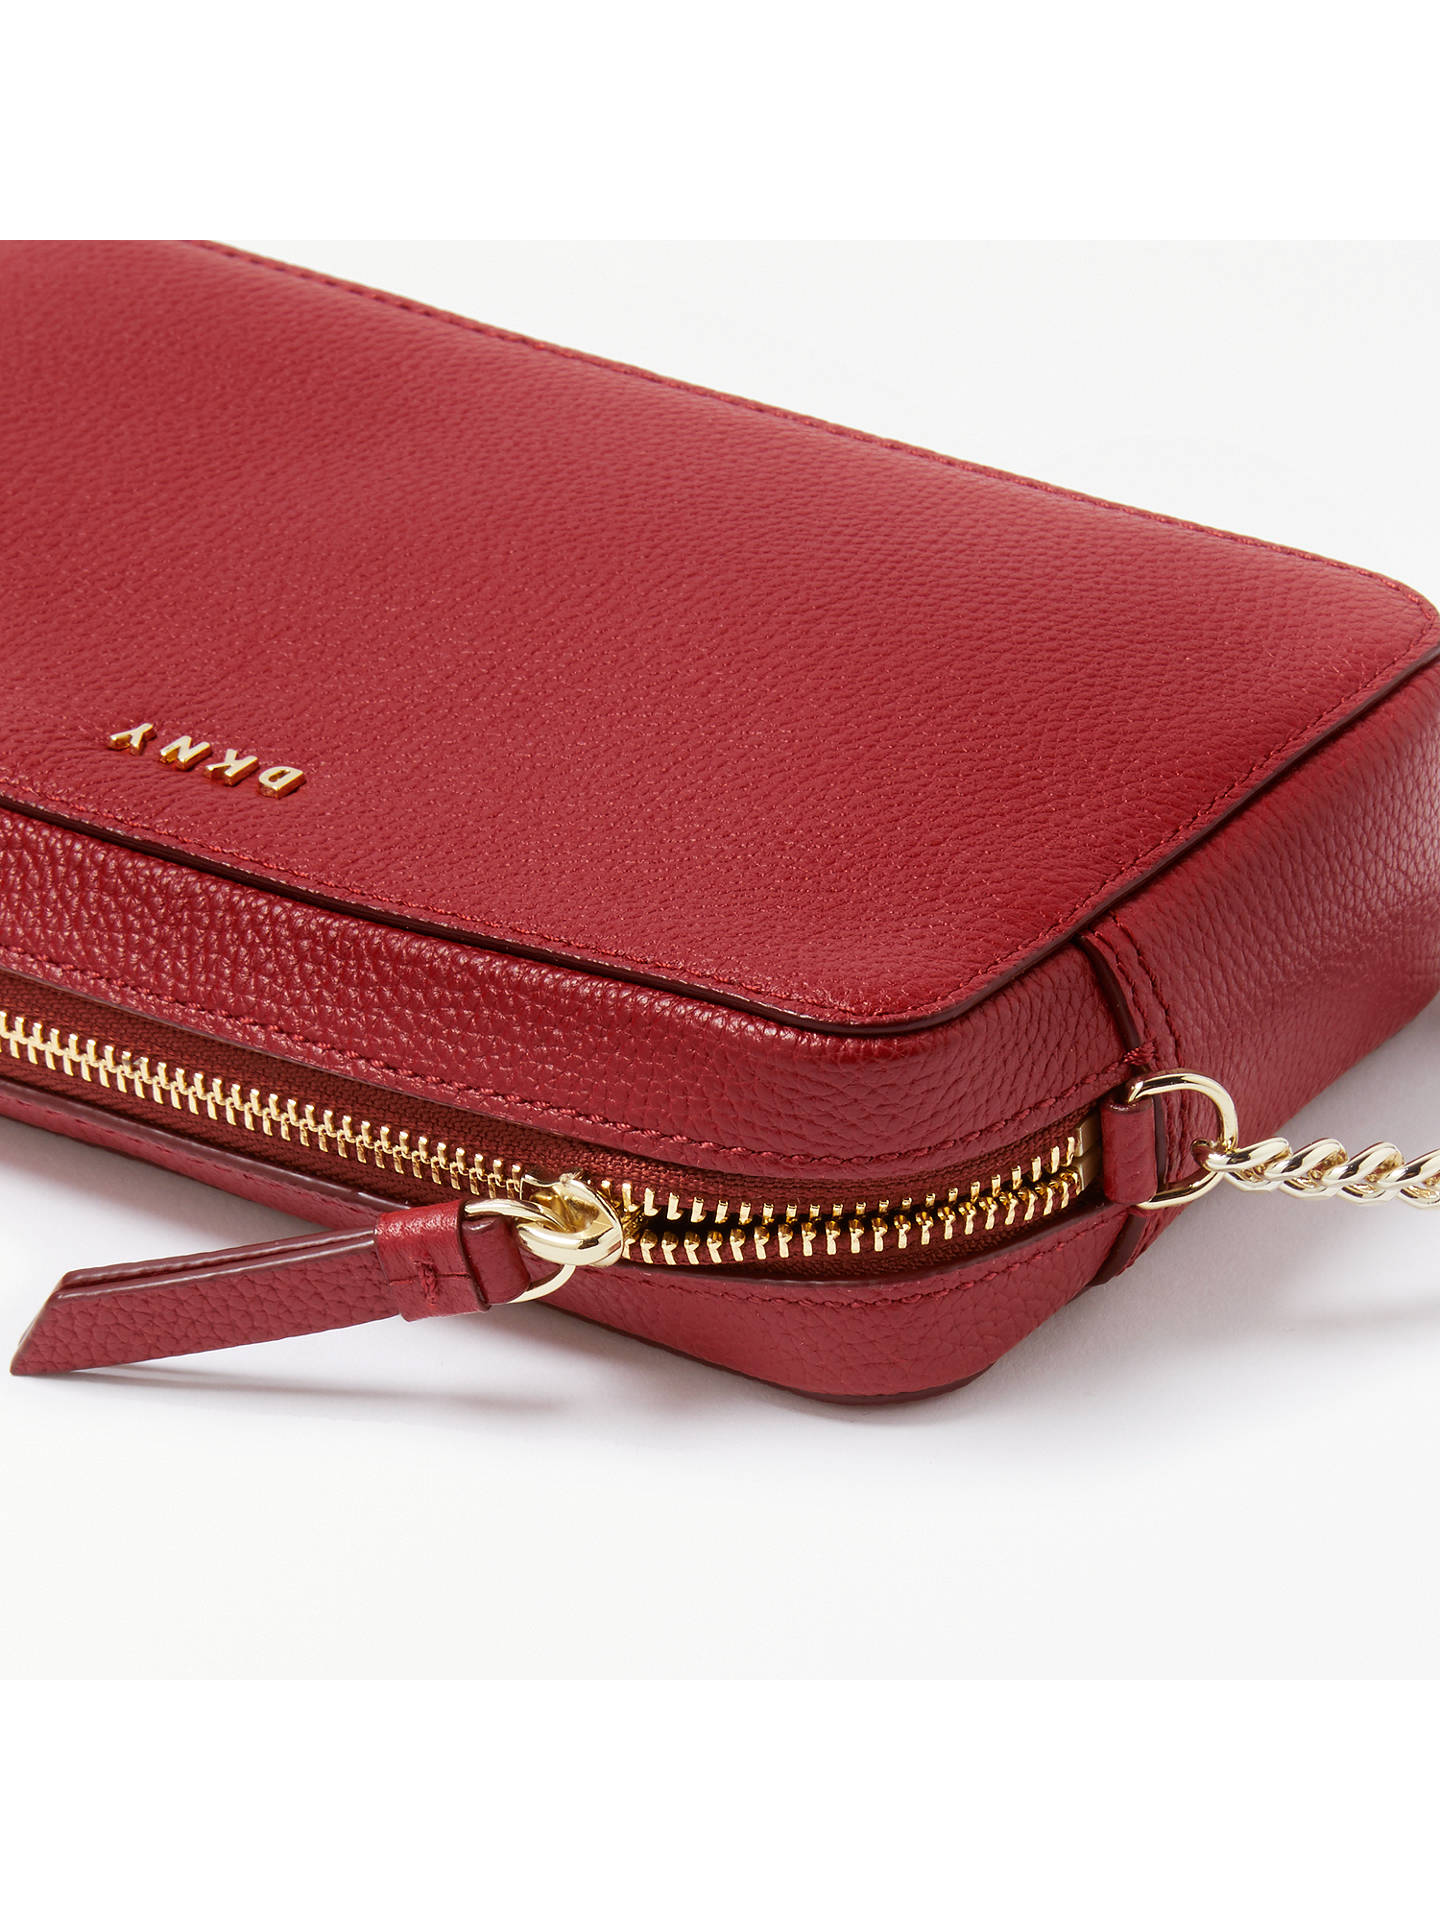 b0640f997d6 ... BuyDKNY Chelsea Pebbled Leather Cross Body Bag, Scarlet Red Online at  johnlewis.com